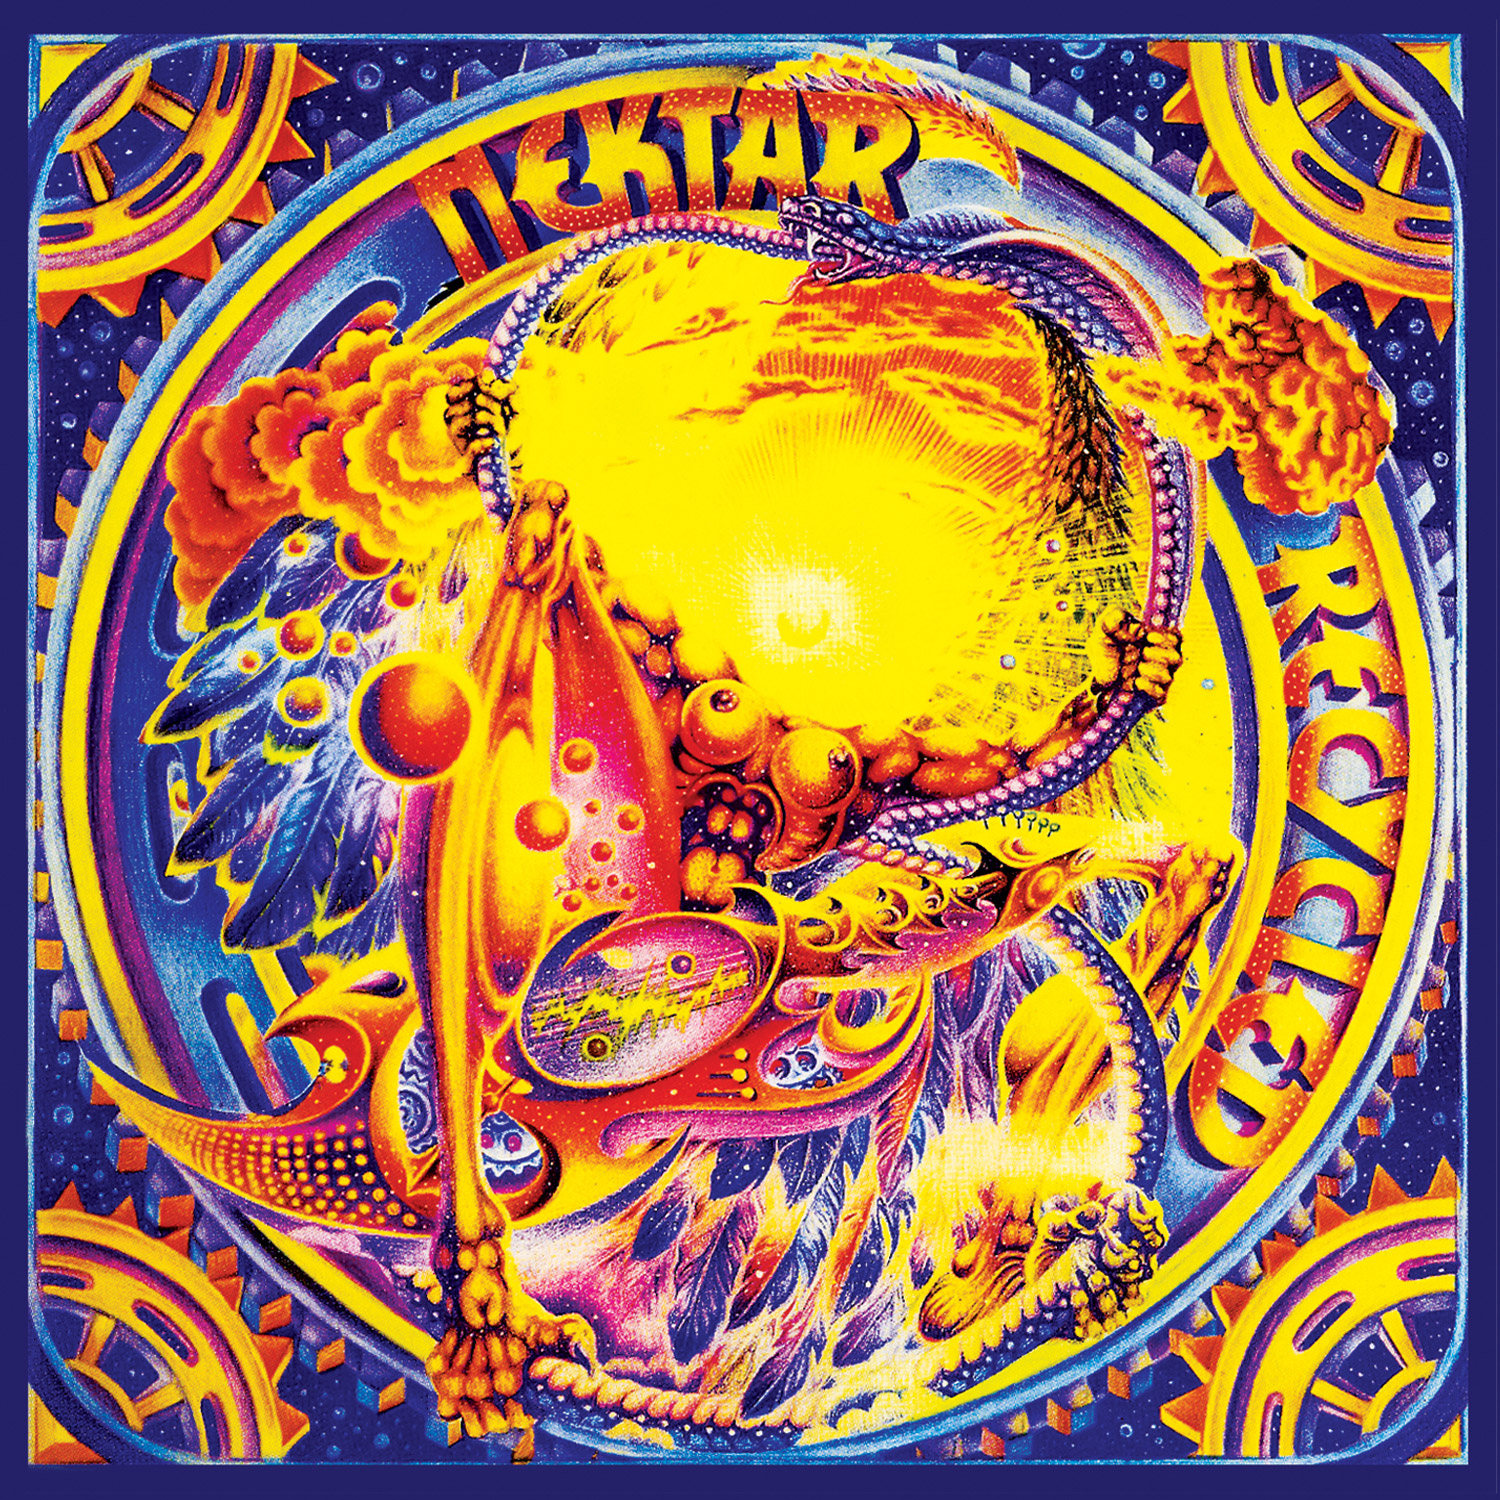 Nektar Recycled Deluxe Edition Cd Cleopatra